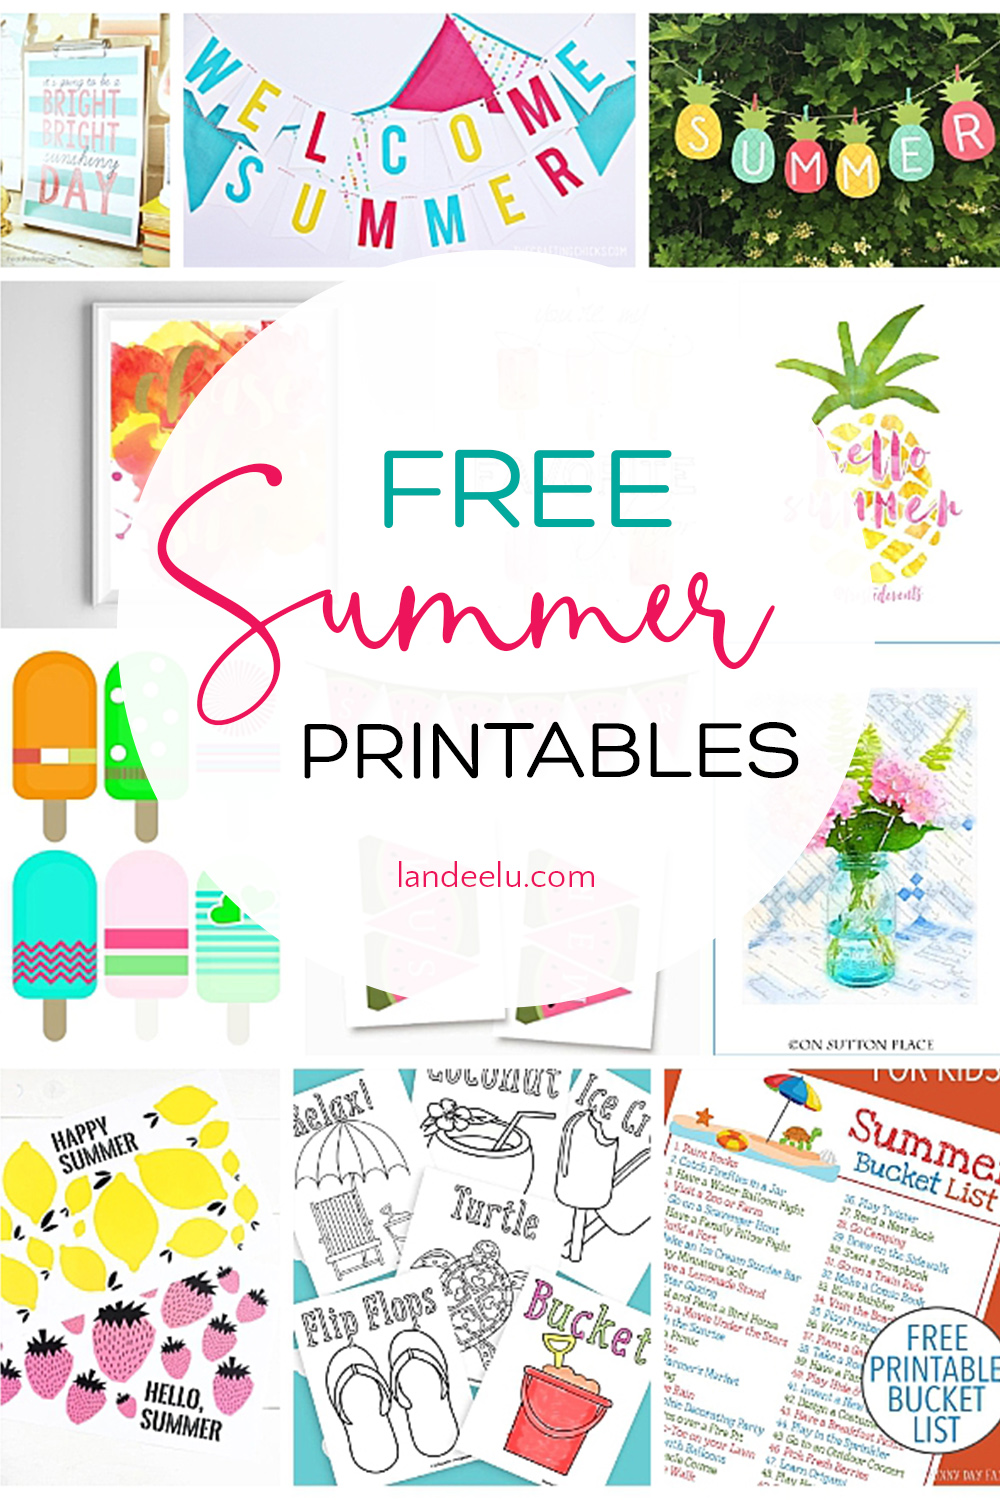 https://i2.wp.com/www.landeeseelandeedo.com/wp-content/uploads/2017/06/Free-Summer-Printables-Collection.jpg?resize=1000%2C1500&ssl=1